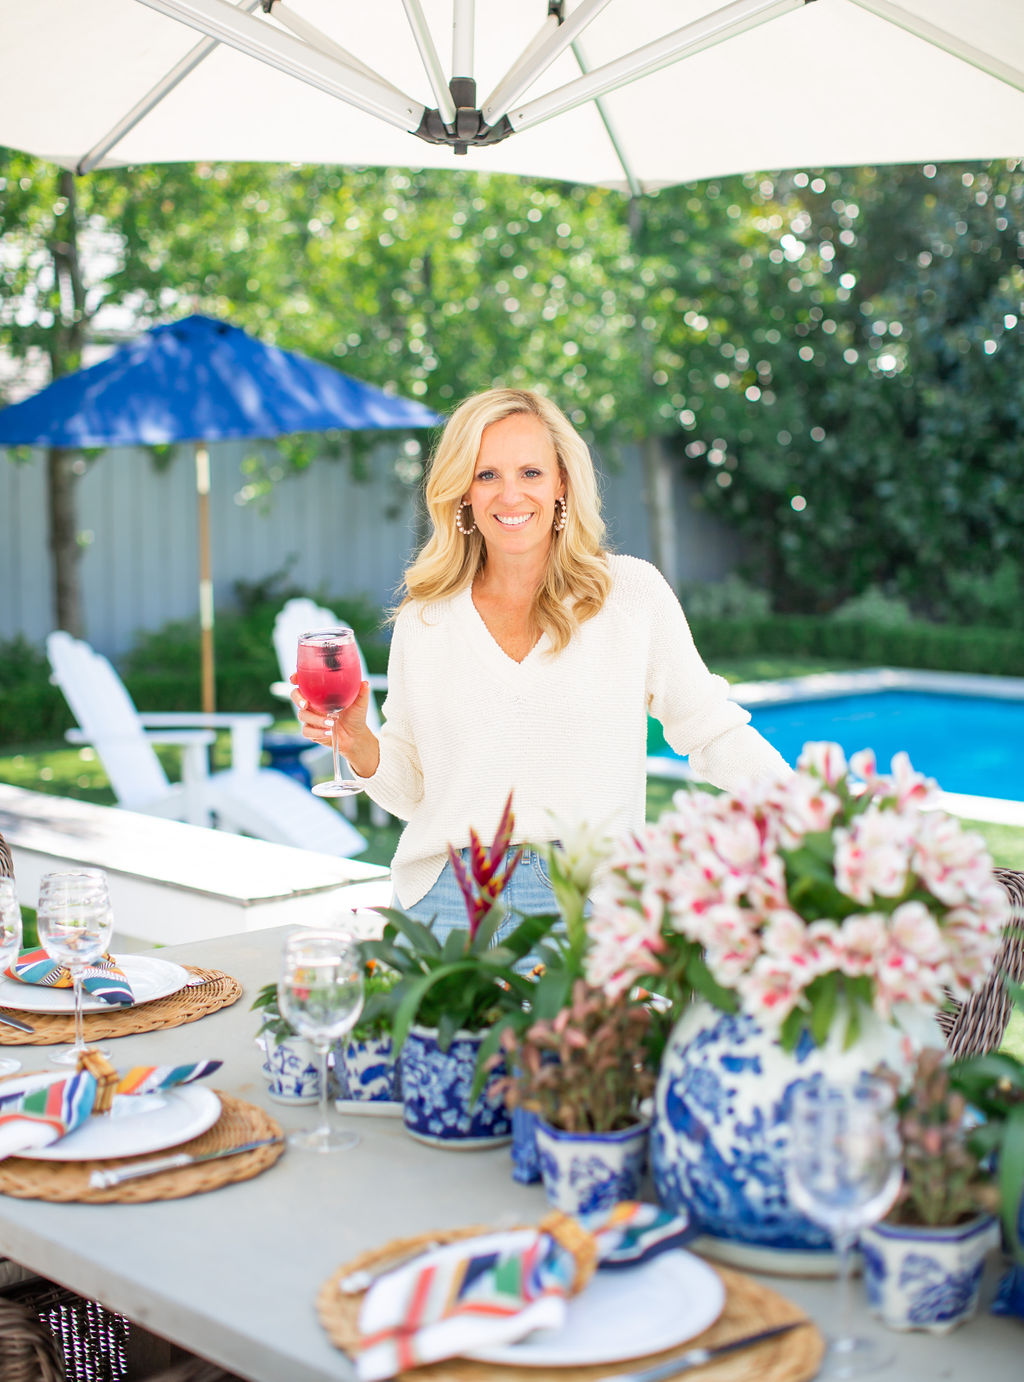 Alicia Wood, Fall Outdoor Tablescape, Alicia Wood, Dallas Lifestyle Expert, Dallas Fashion Blogger, Dallas Hostess